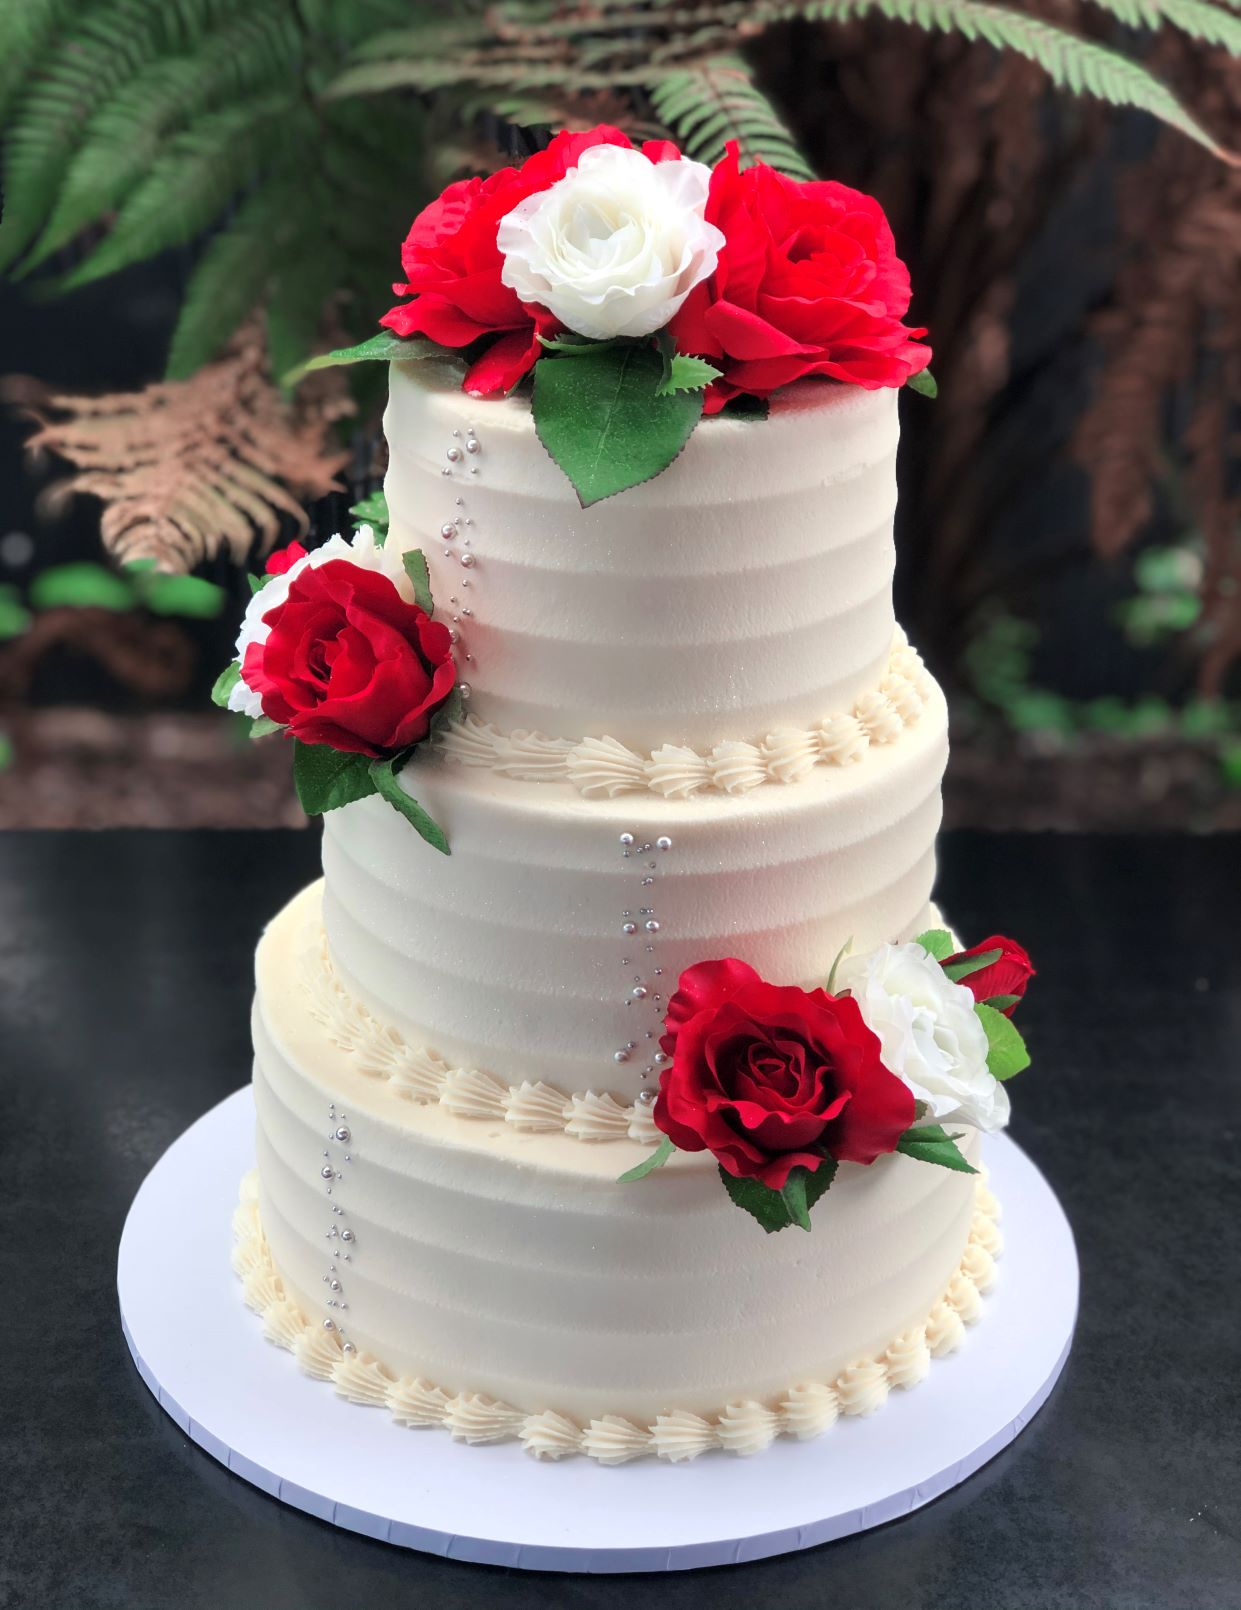 3 Tier Material Rose & Texture